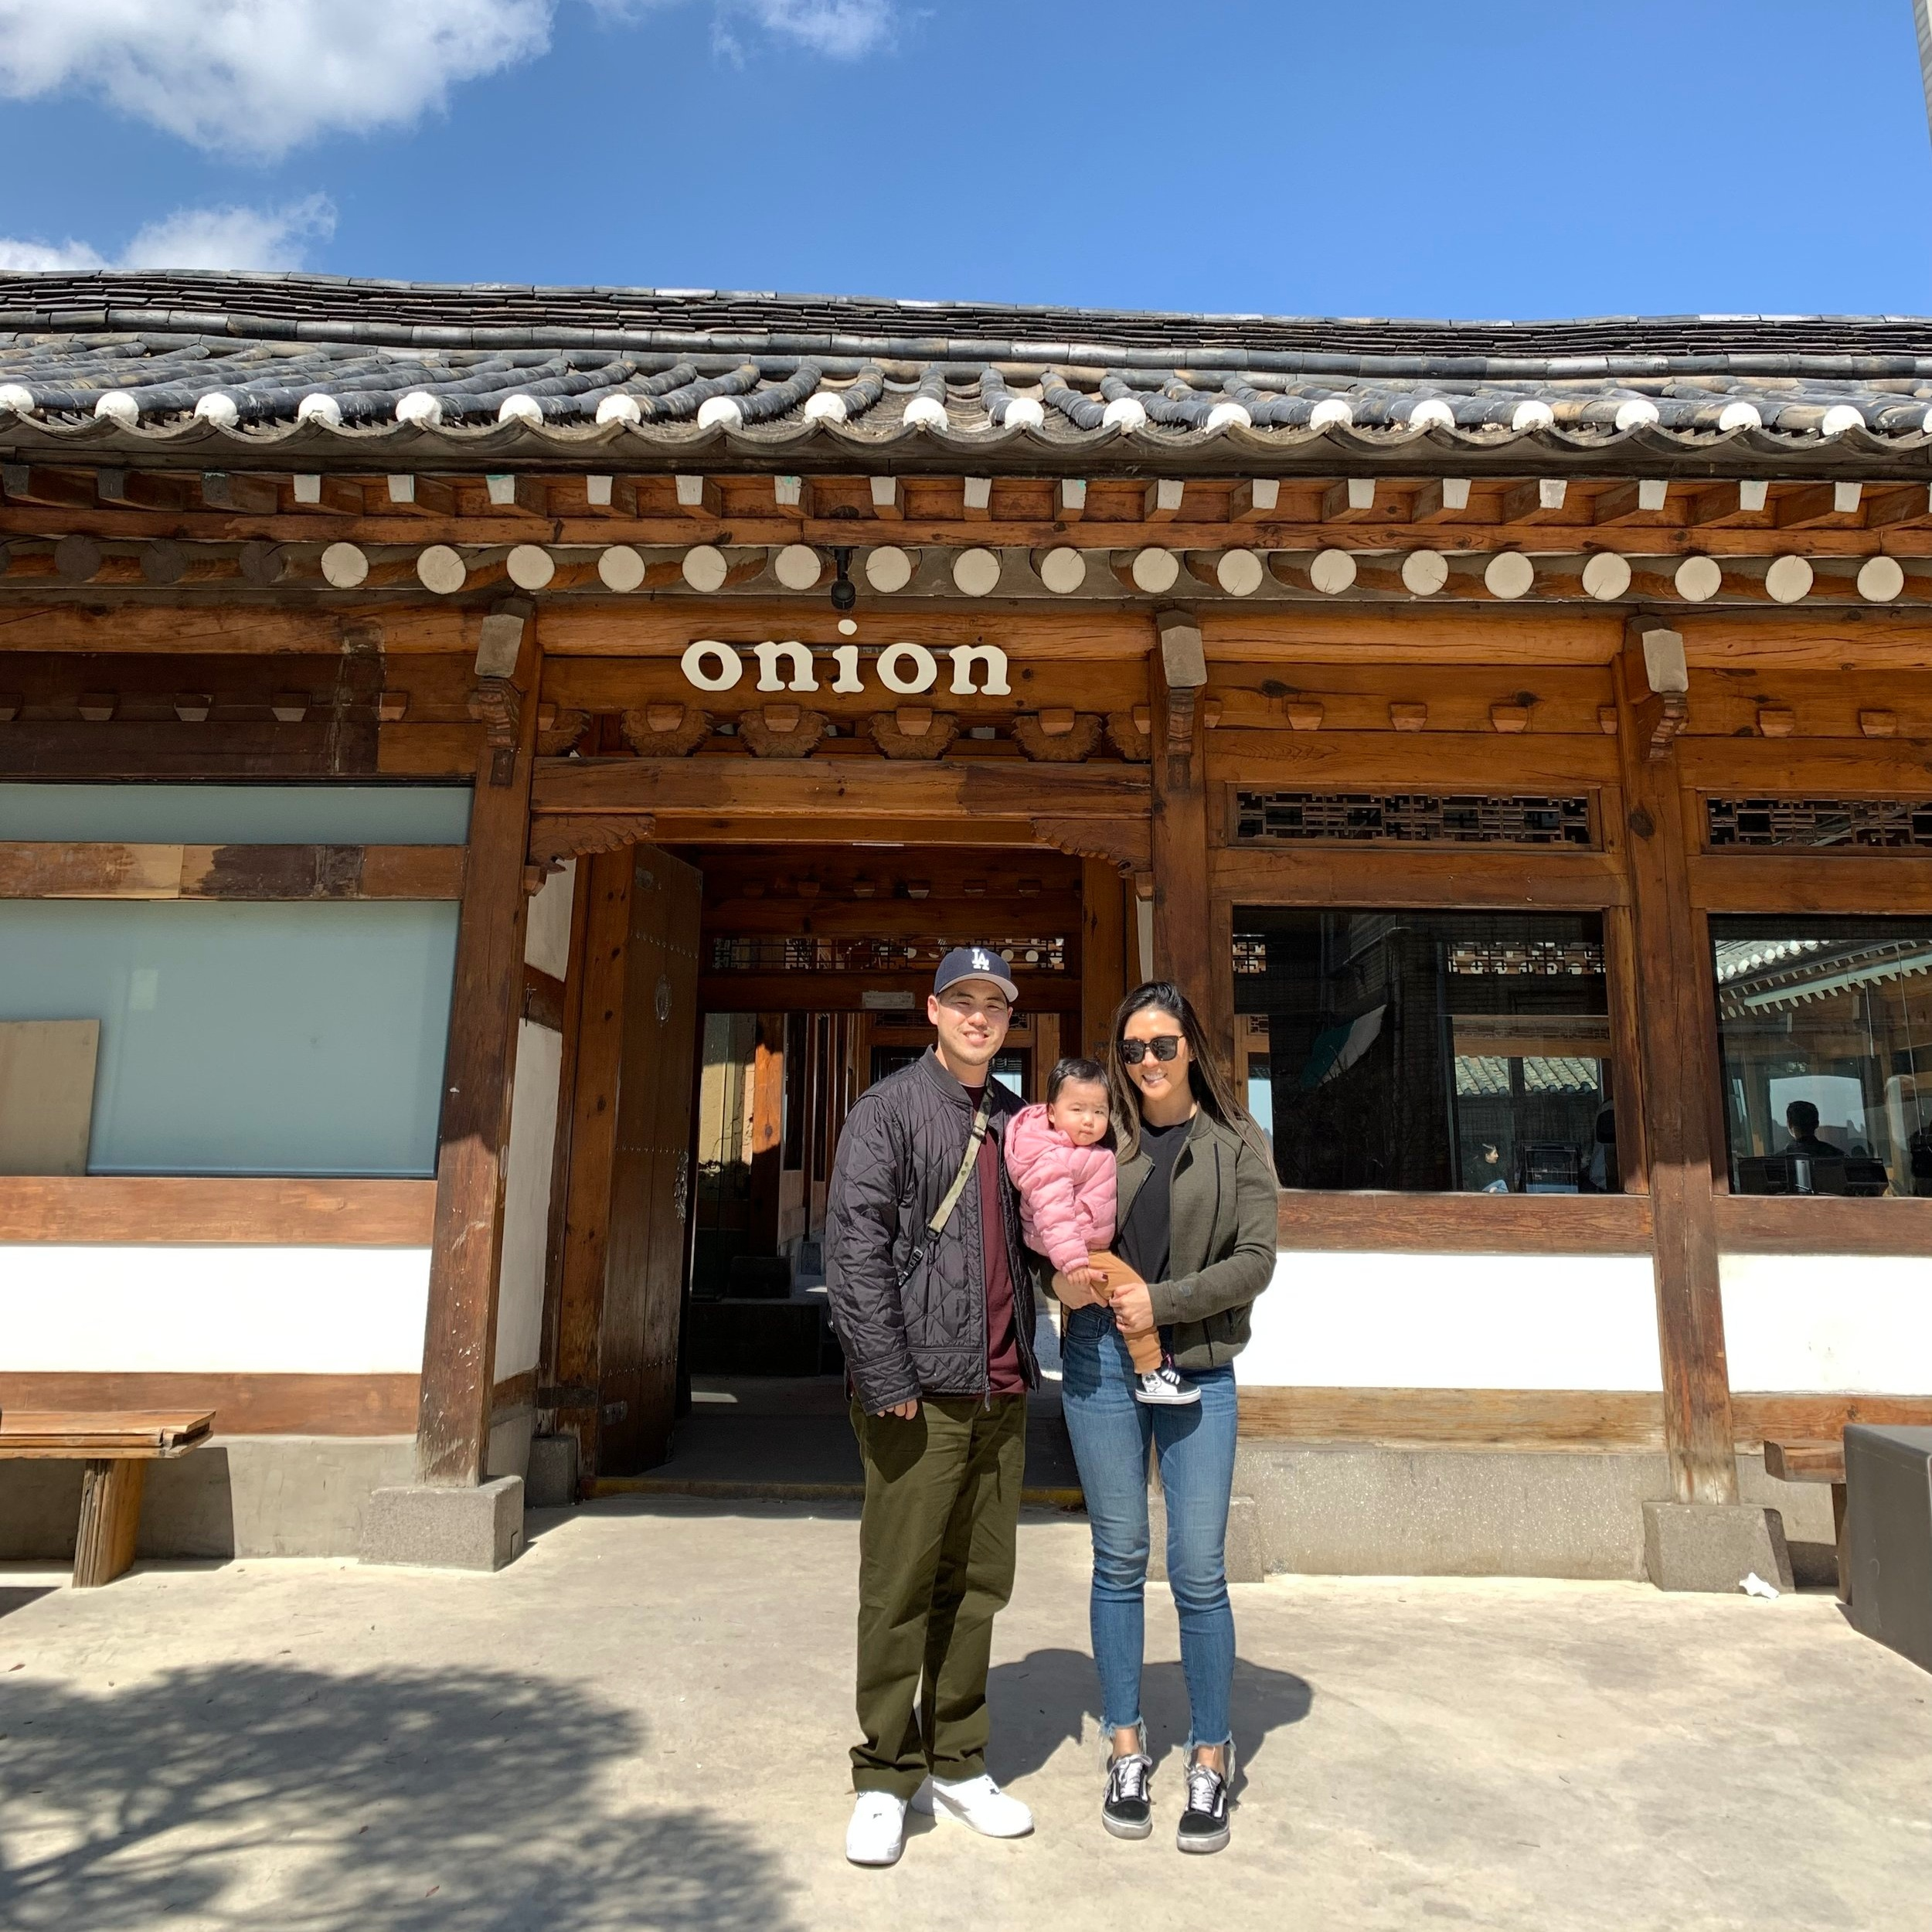 Onion located in Insadong is a Hanok cafe known for their exquisite pastries.